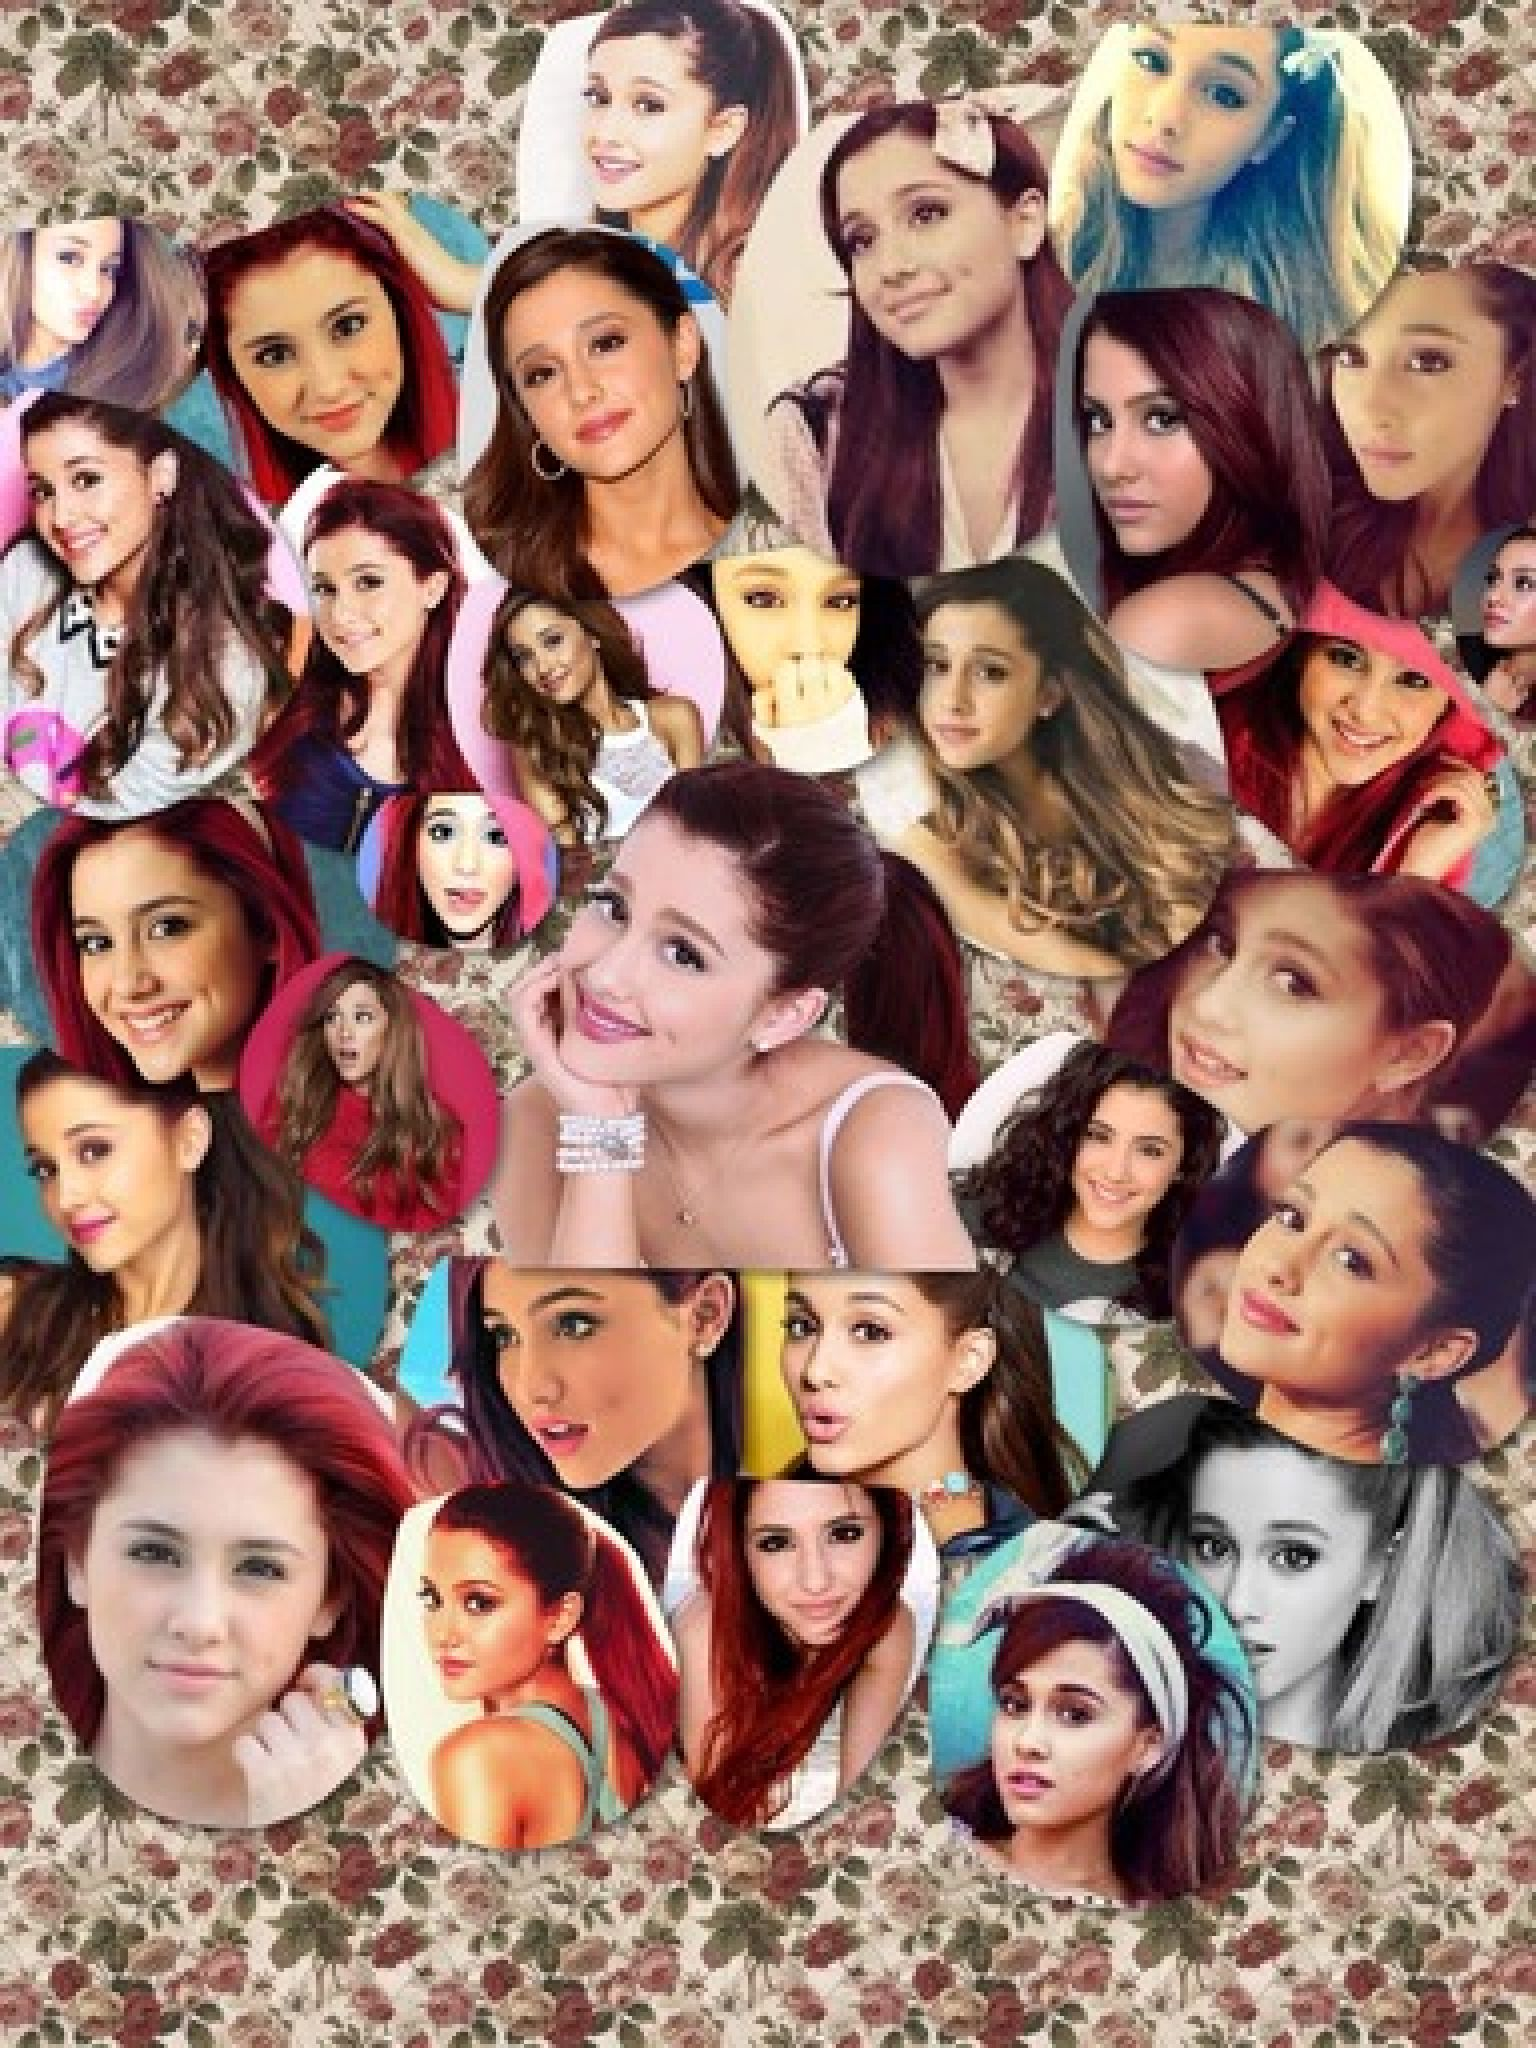 Ariana Grande collage I made | Celebrities in 2019 ...